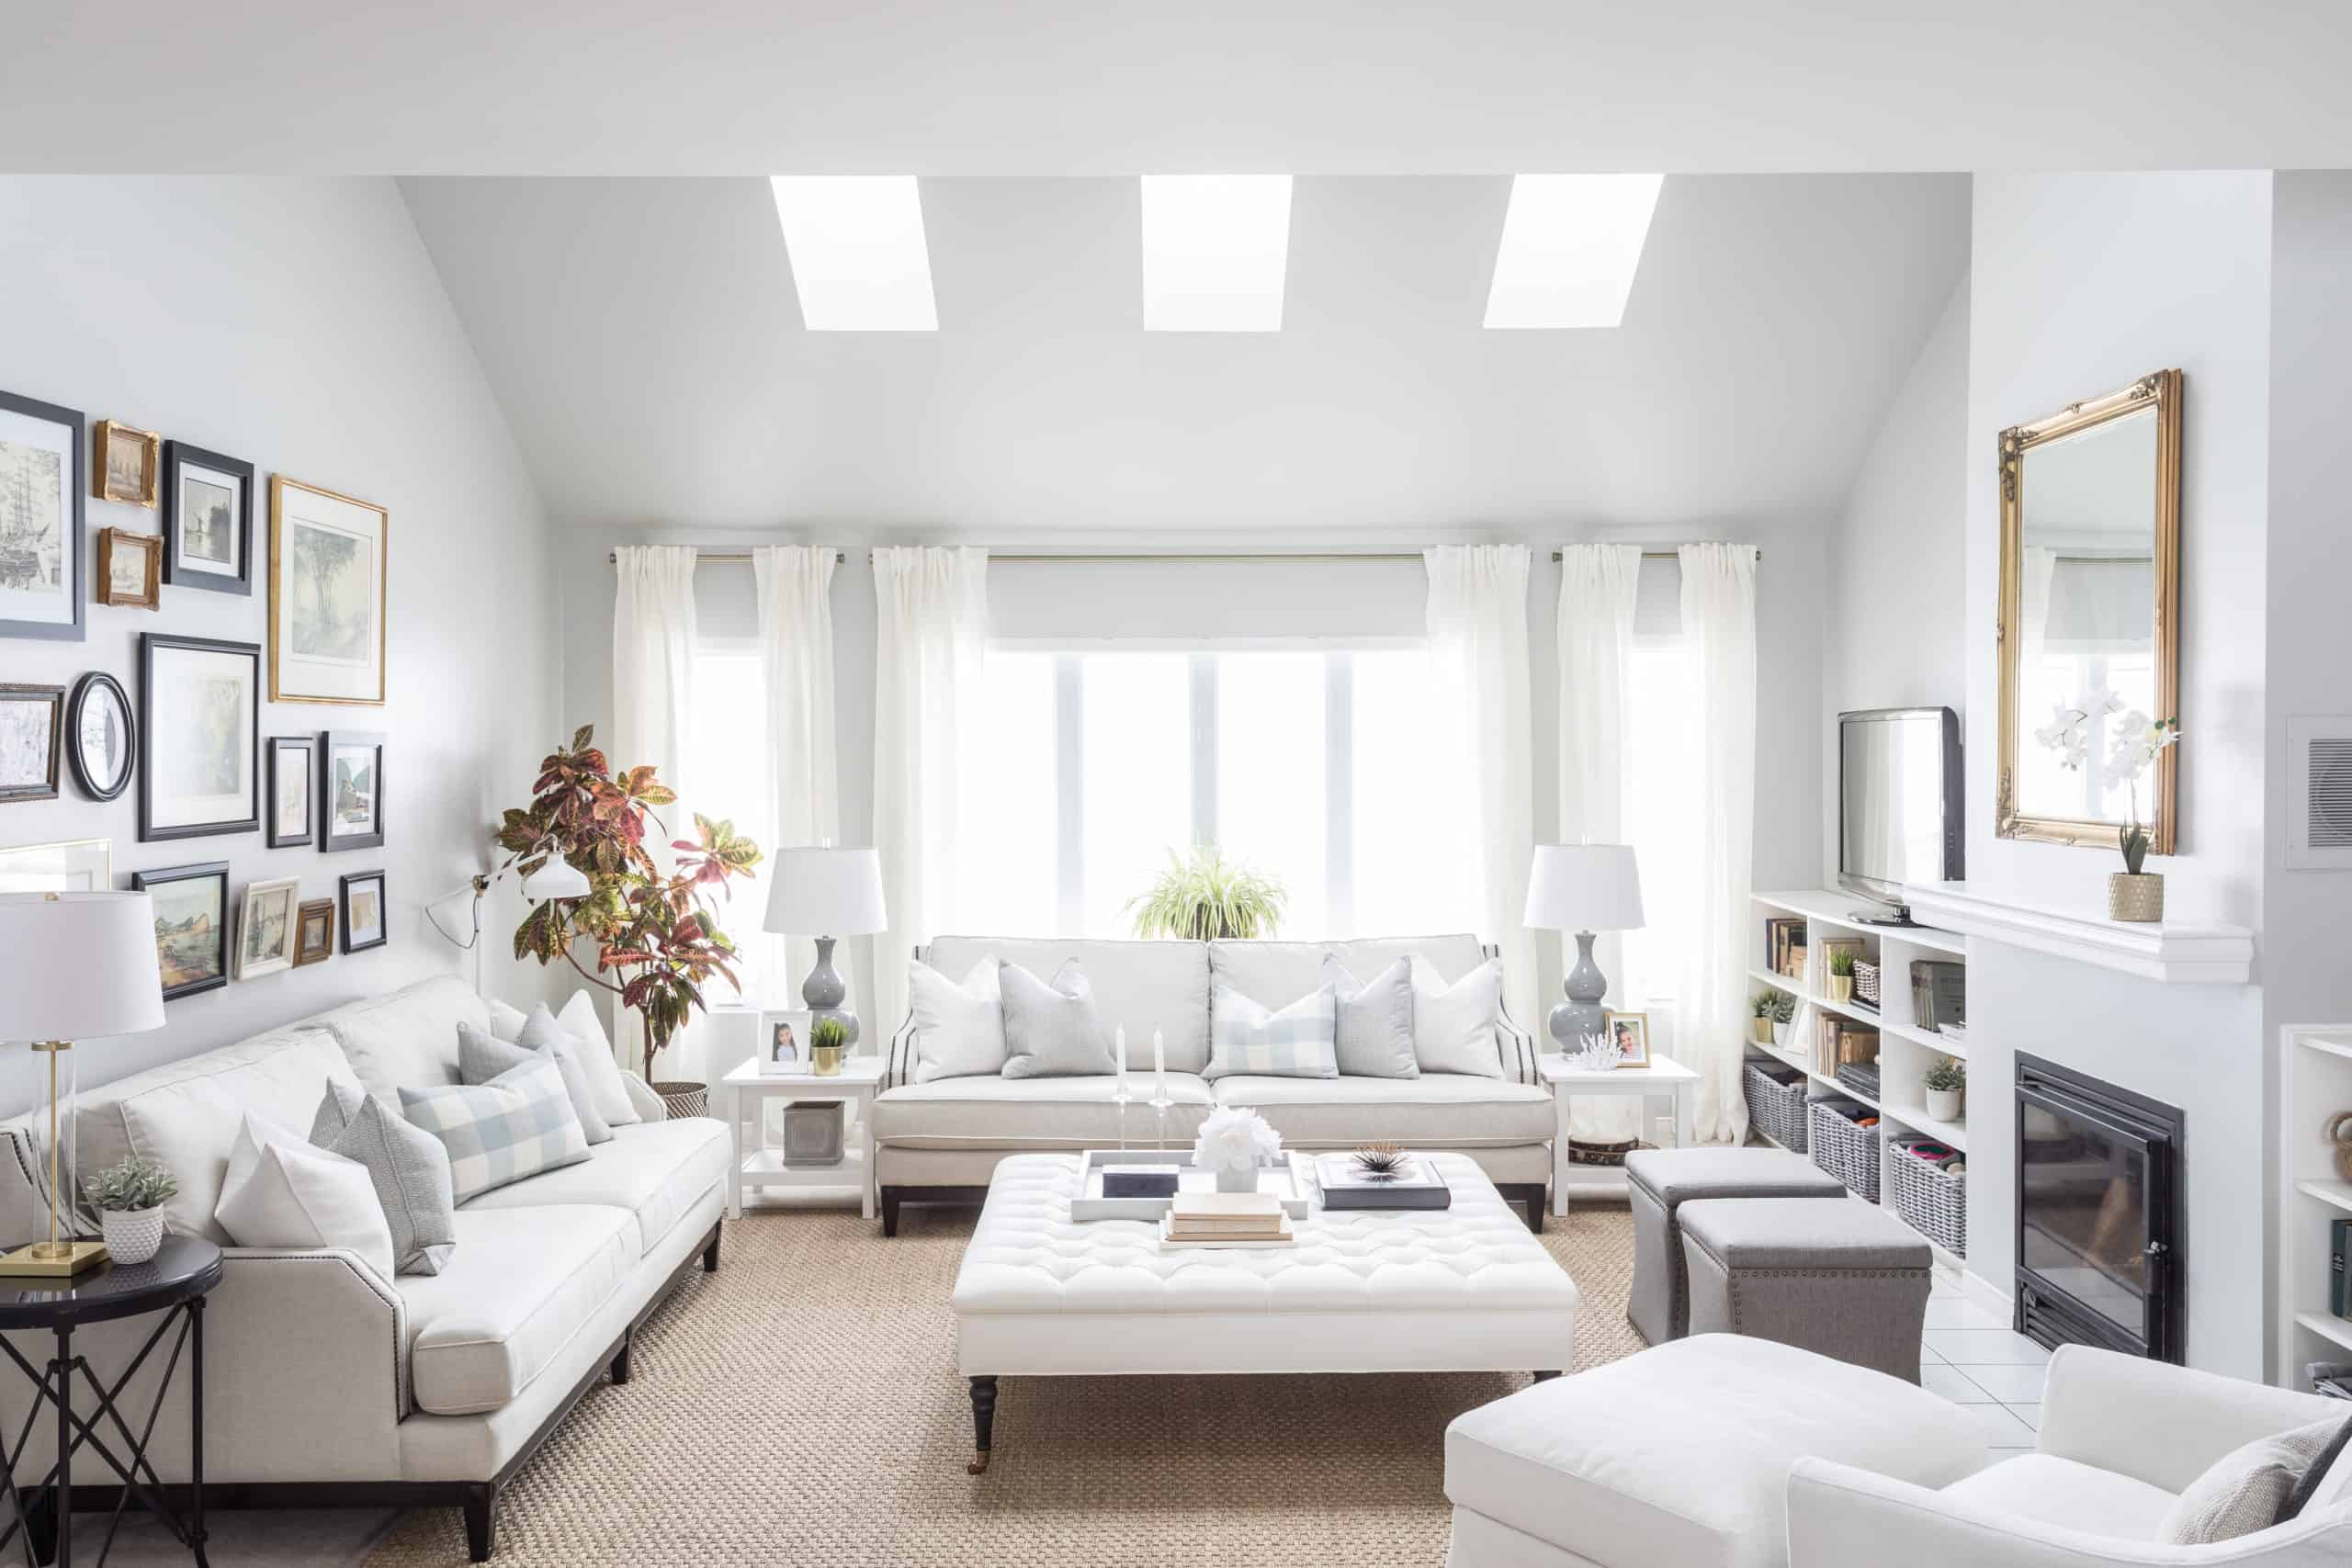 White couch against a bright window inside a large living room